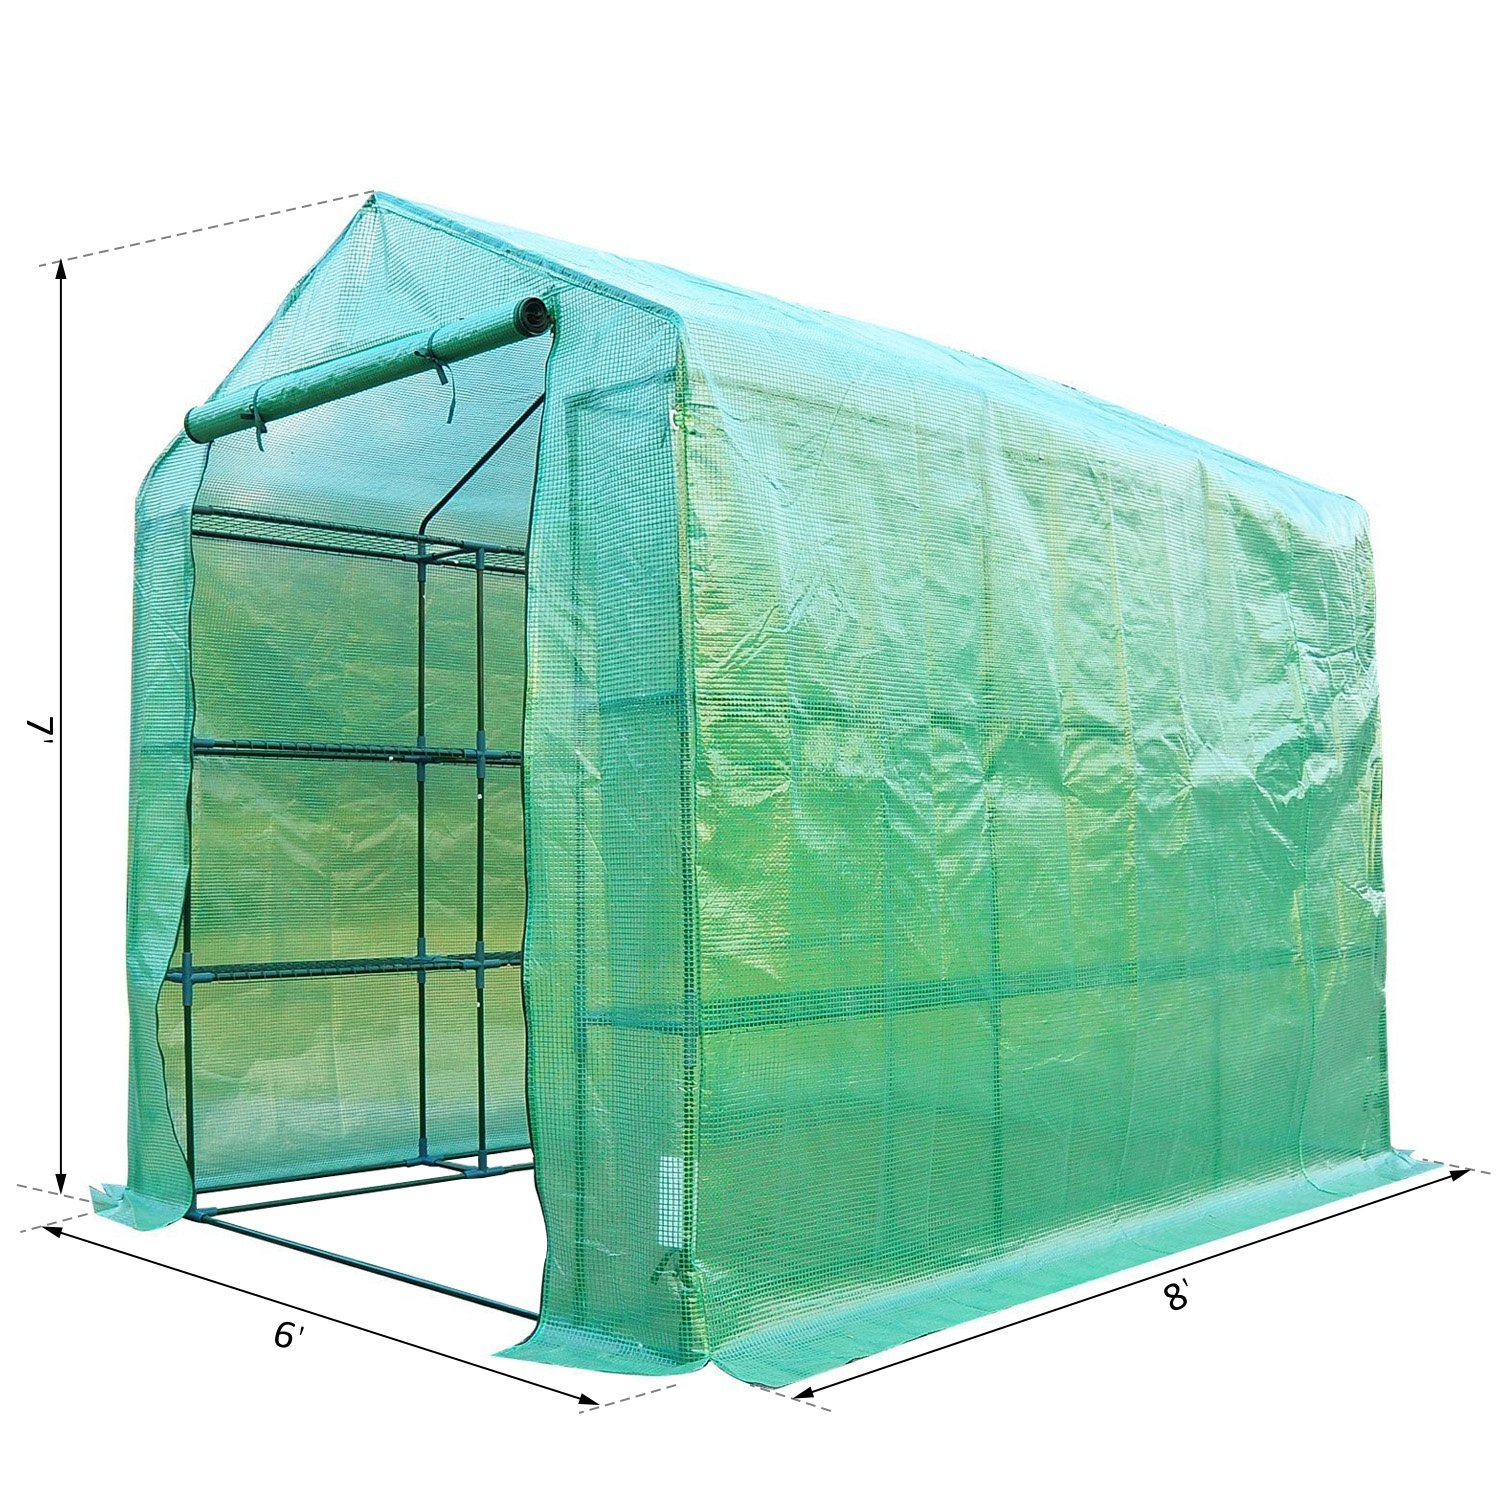 Outsunny 8' x 6' x 7' Outdoor Portable Walk-in Greenhouse by Outsunny (Image #7)